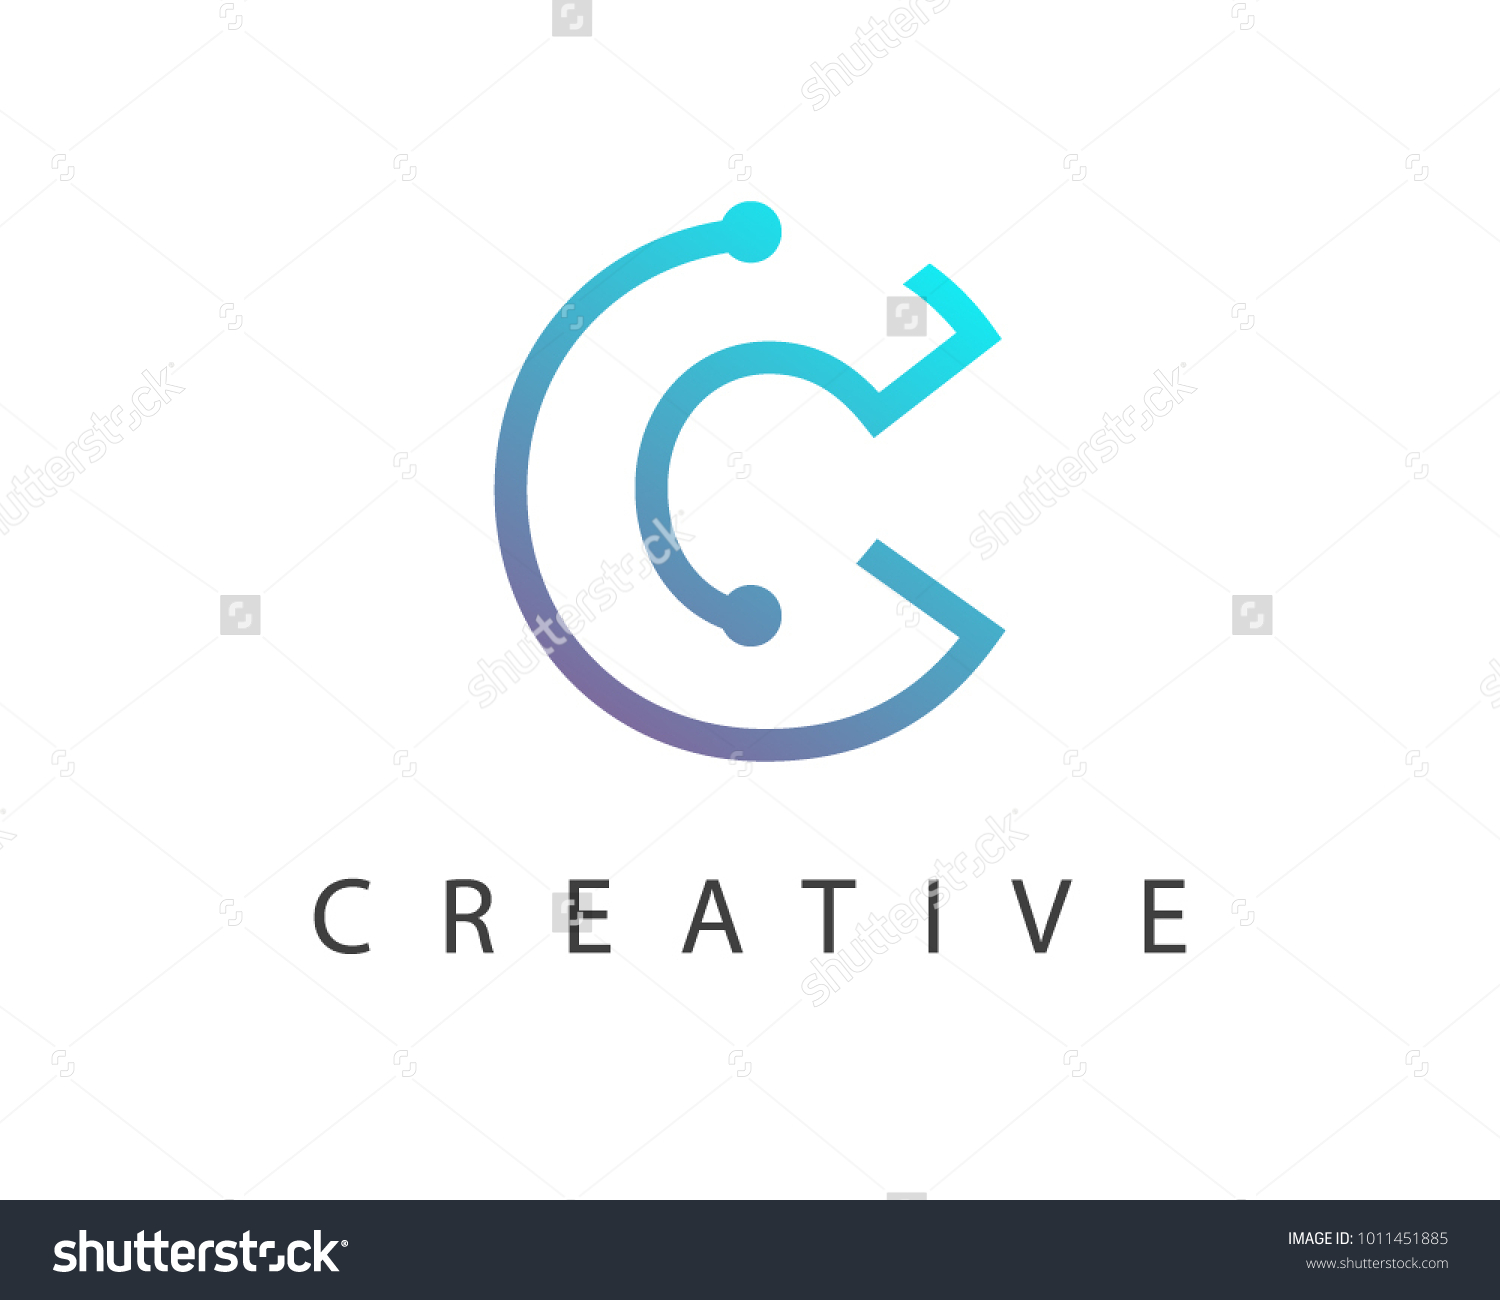 Initial letter c logo connected circle stock vector 1011451885 initial letter c logo connected circle symbol design template element biocorpaavc Images